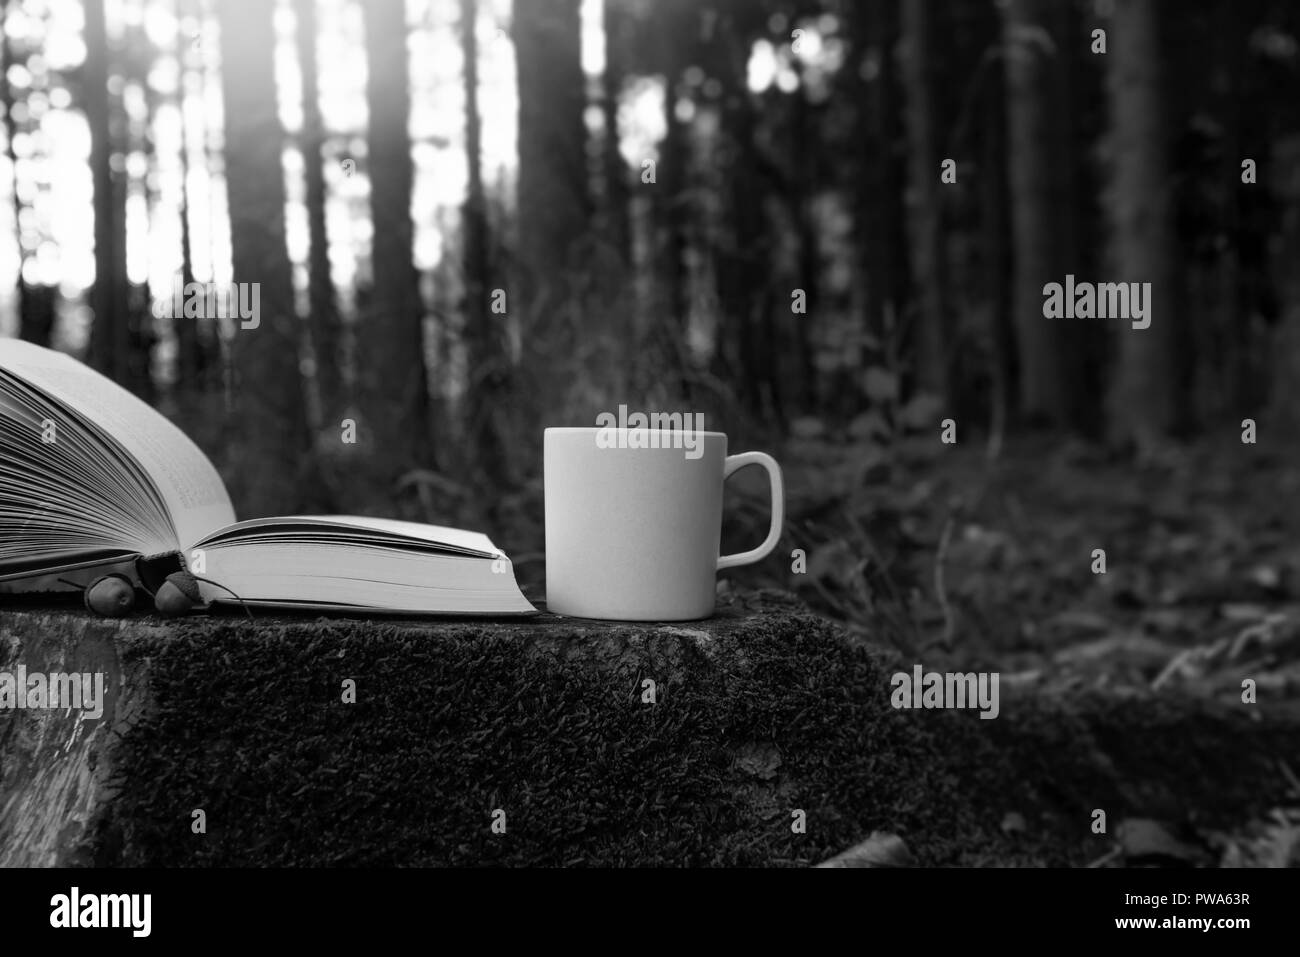 Lifestyle image with a cup of steamy hot coffee and an open book, on a cut tree root, outside in a forest, on a sunny day. Leisure in nature. - Stock Image